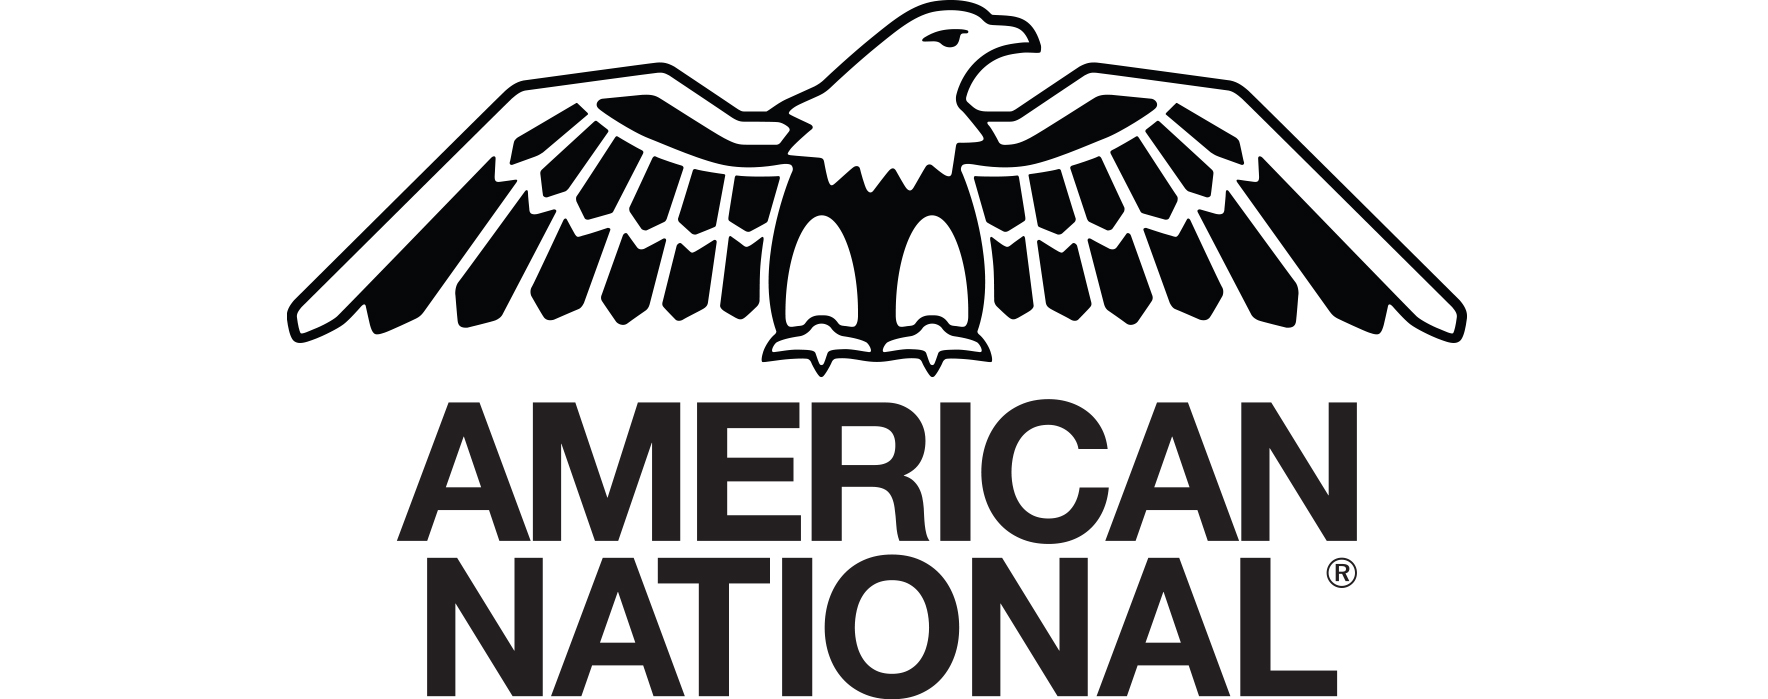 American National Logo 2016.jpg